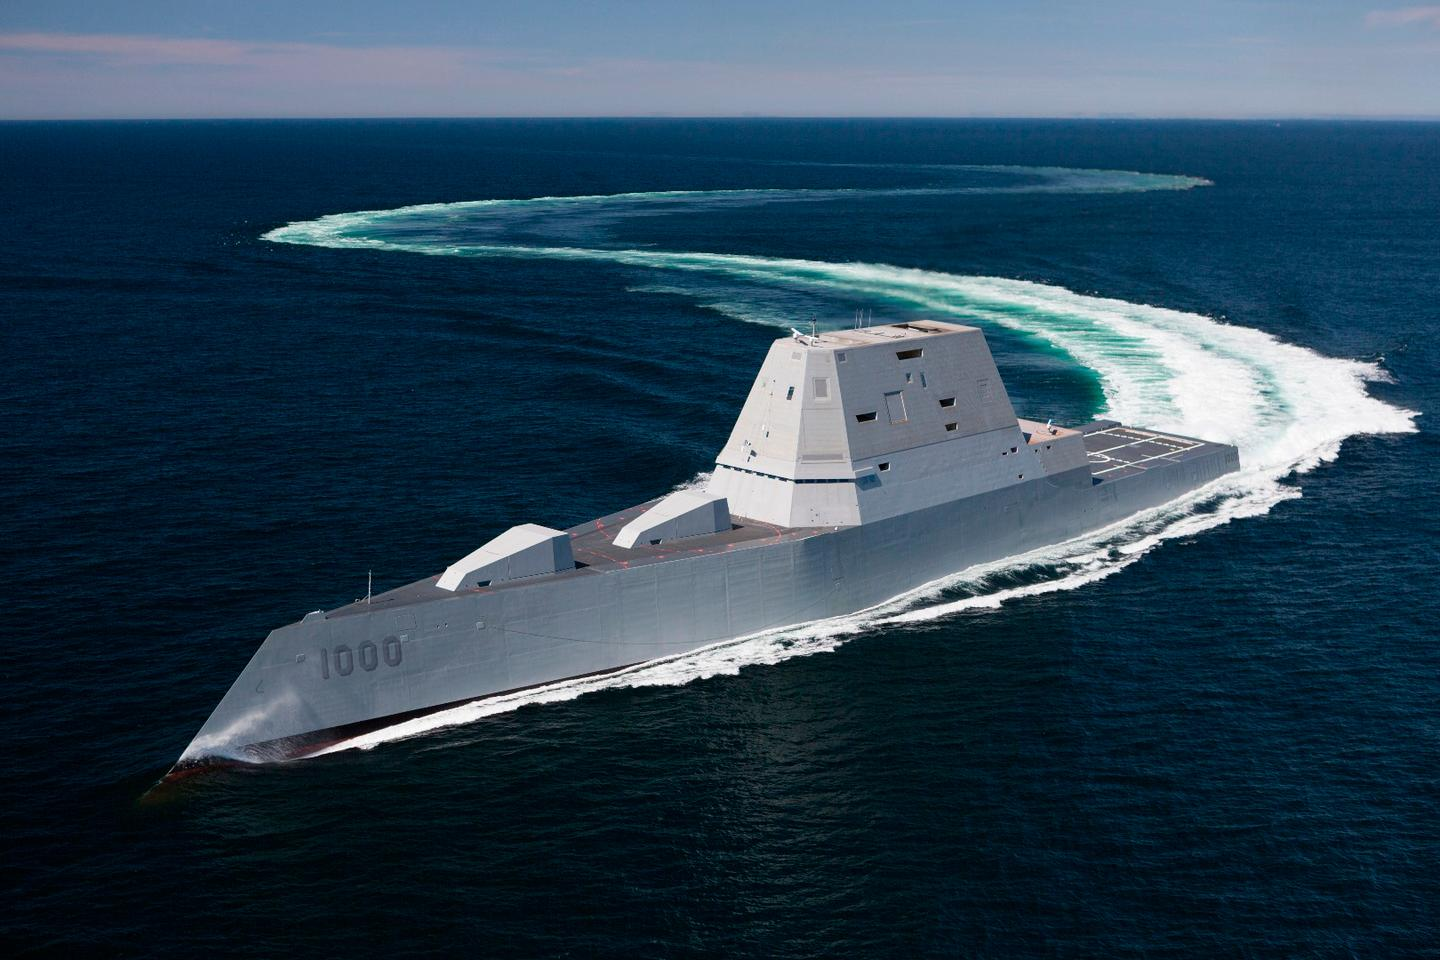 The soon-to-be-commissionedguided-missile destroyer USS Zumwalt (DDG 1000) transits the Atlantic Ocean during acceptance trials April 21